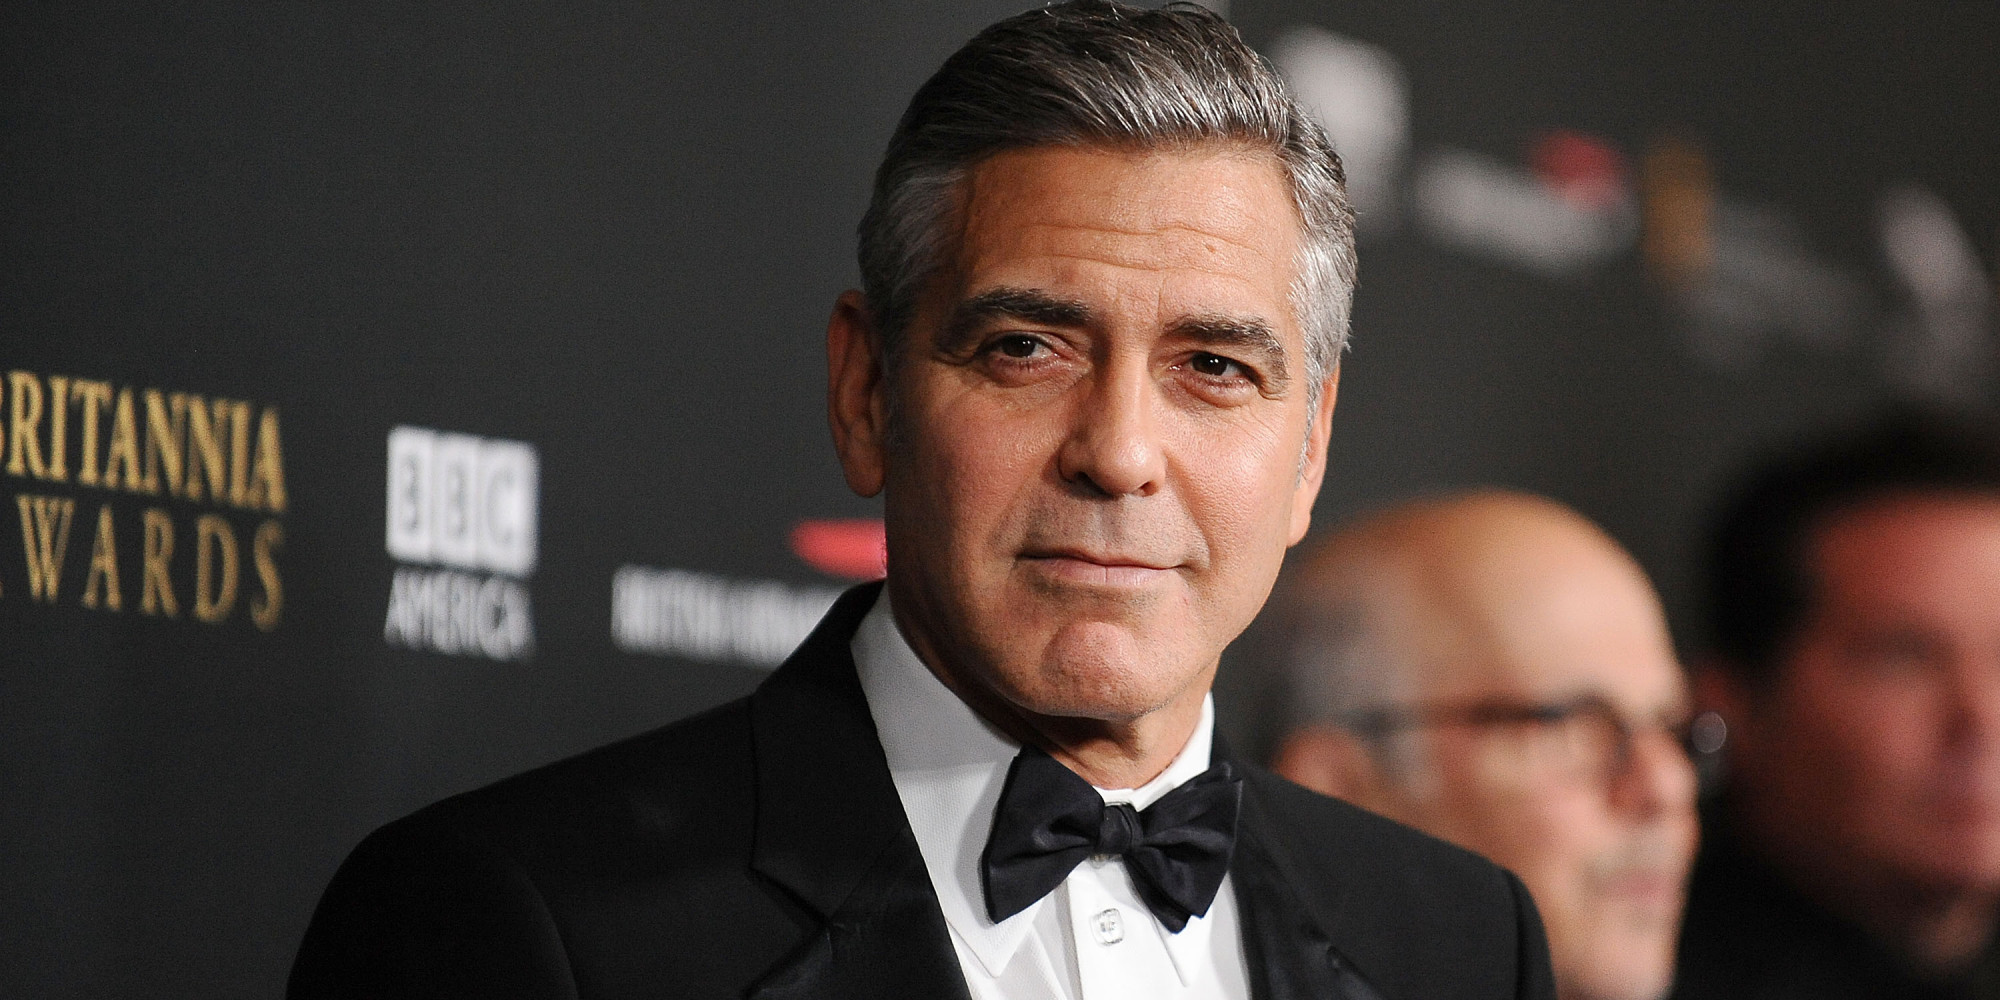 George Clooney: Actor George Clooney Spends Christmas Vacation in Mexico